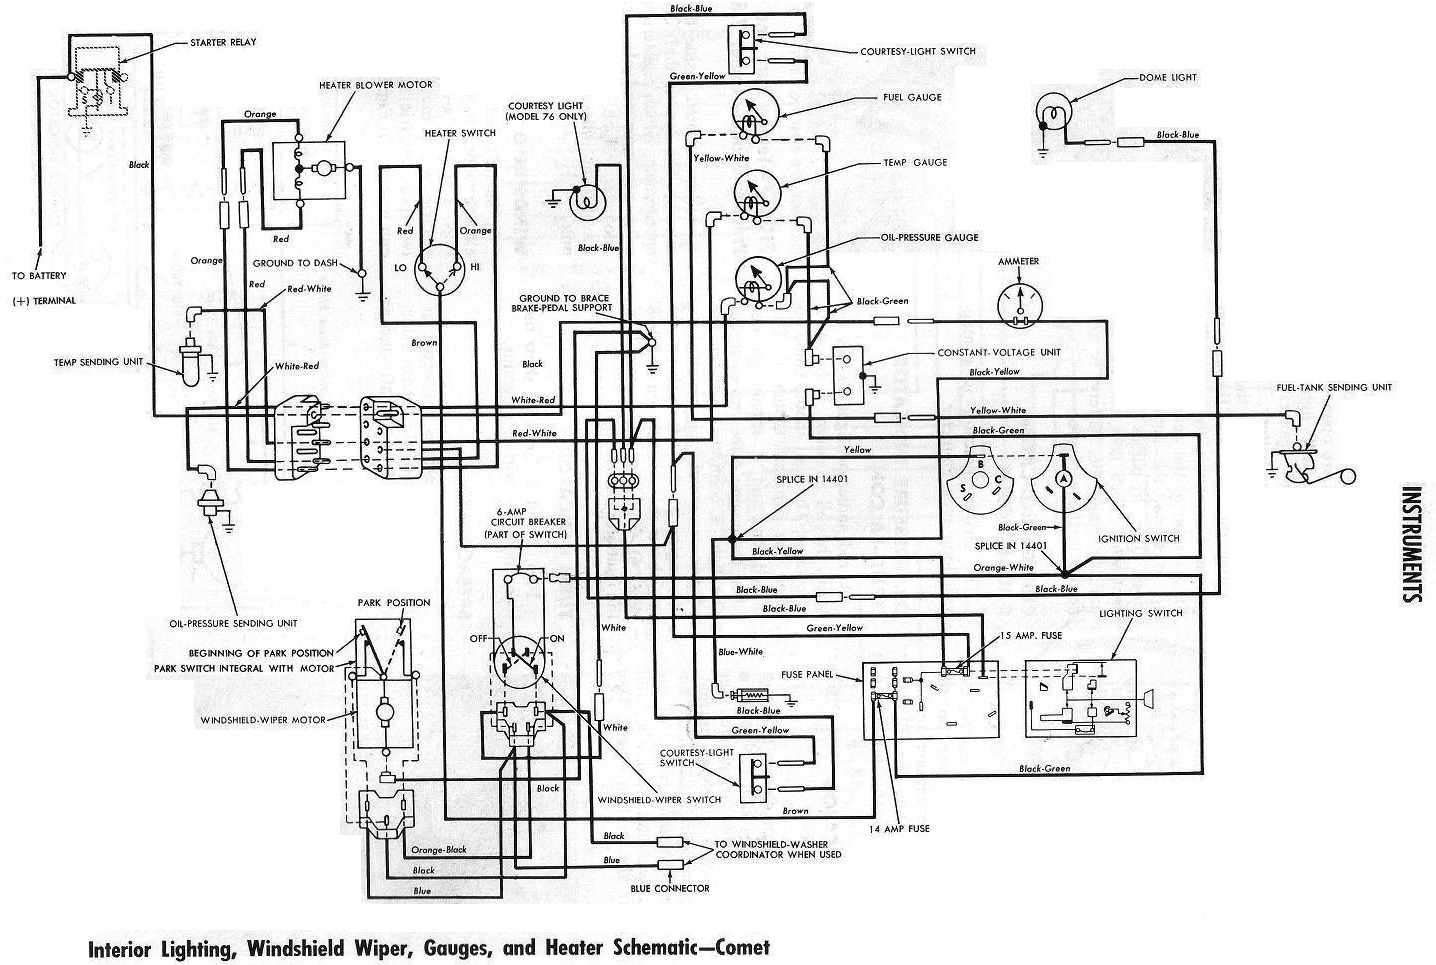 65 Comet Wiring Diagram : 23 Wiring Diagram Images